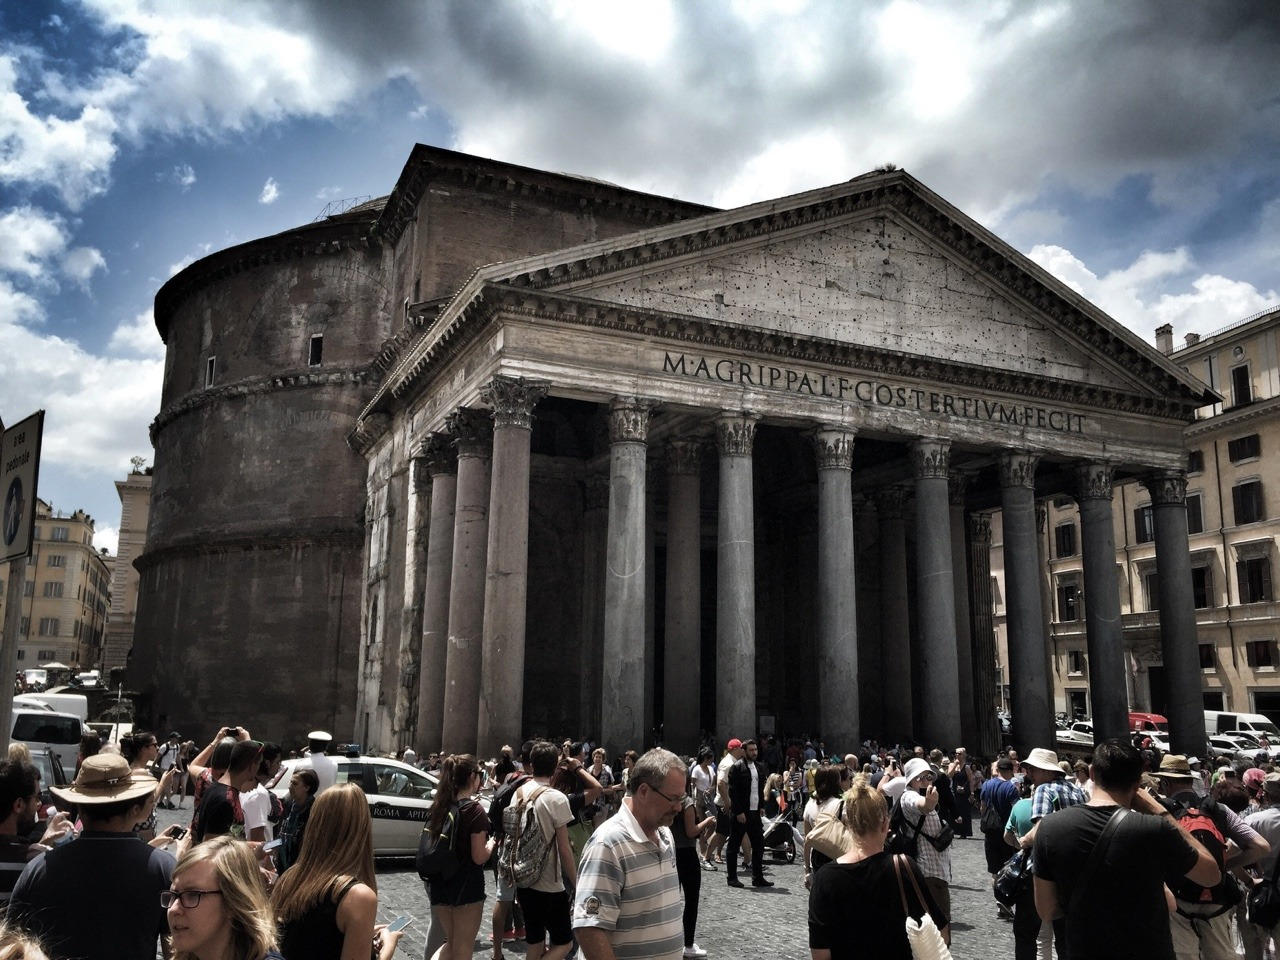 Behold, The Pantheon!